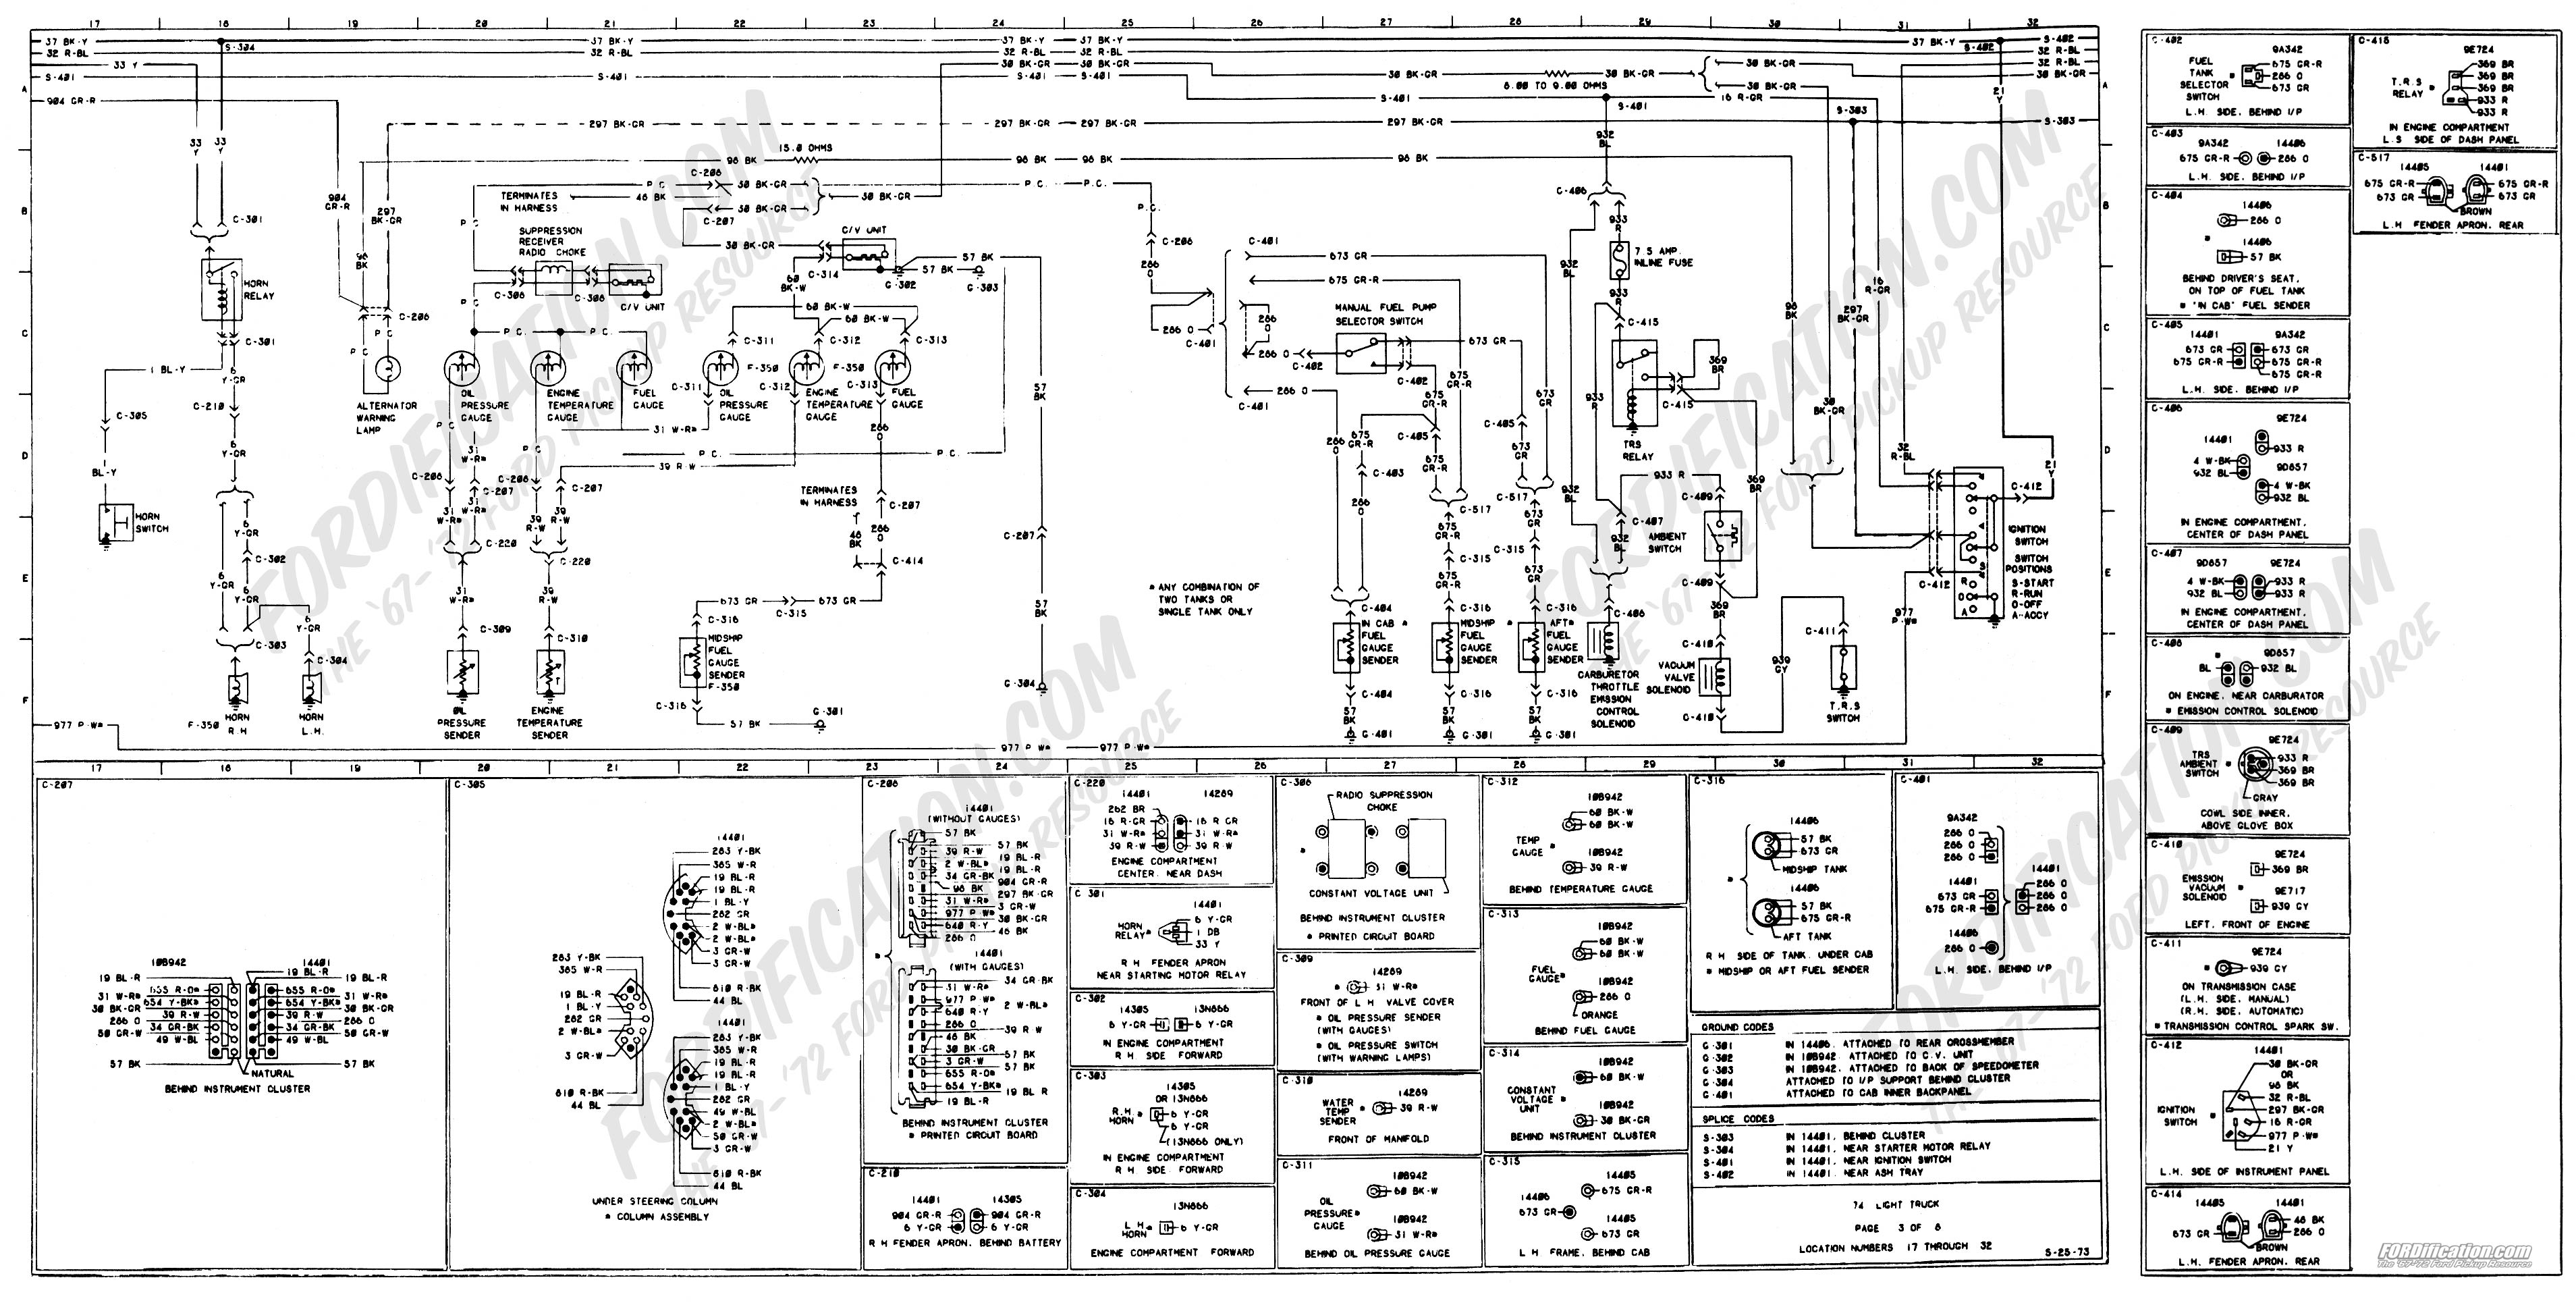 1973 1979 ford truck wiring diagrams schematics fordification net rh fordification net 1974 ford alternator wiring diagram 1974 ford f250 wiring diagram